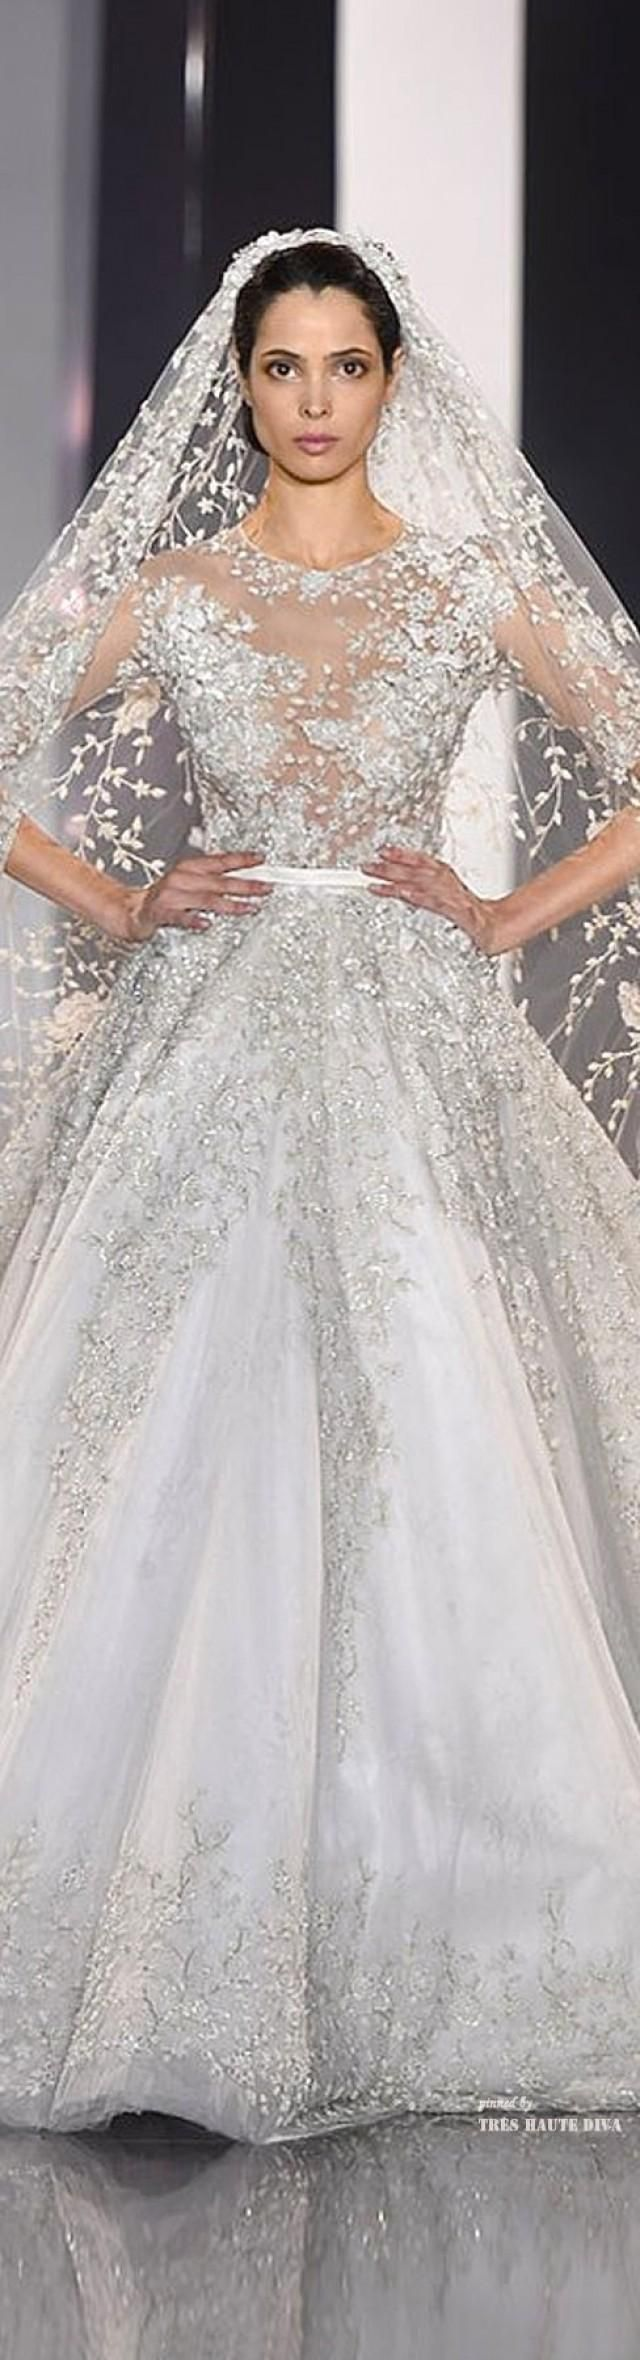 Ralph Russo Couture Fall/Winter 2014-15